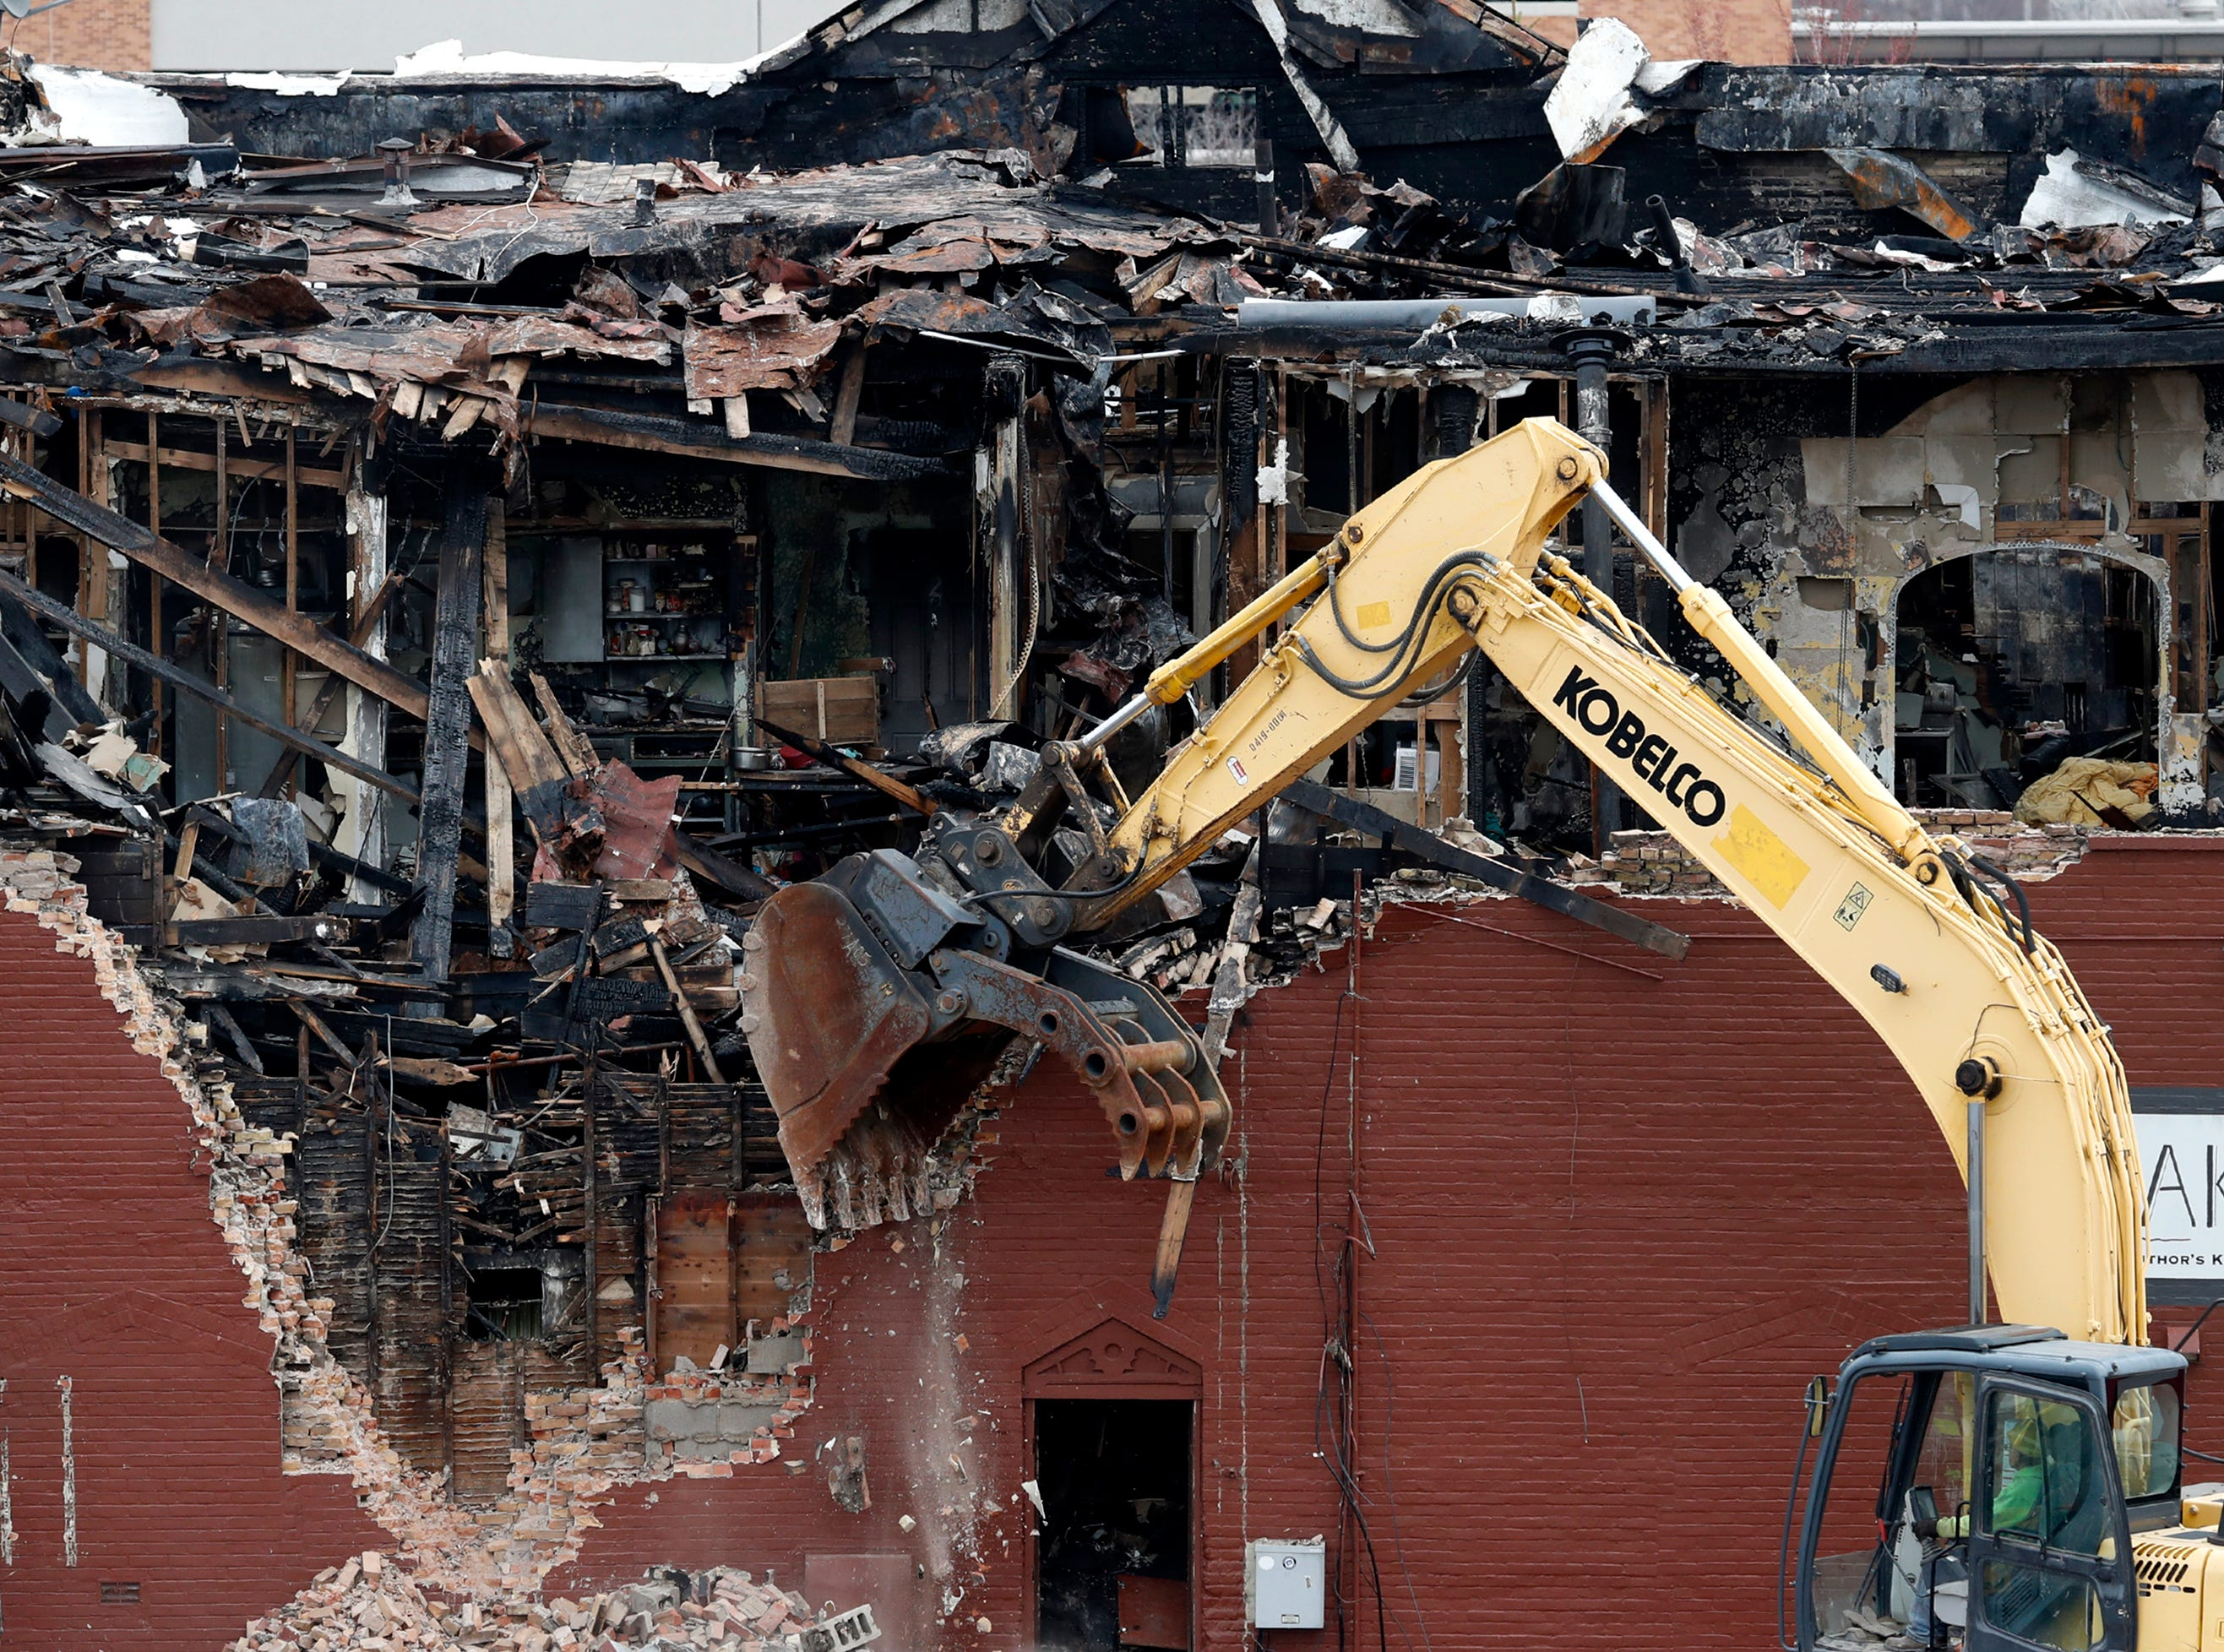 Demolition begins on the building that housed Author's Kitchen and Bar and apartments on the corner of West Washington and North Appleton Streets Monday, April 22, 2019, in Appleton, Wis. 